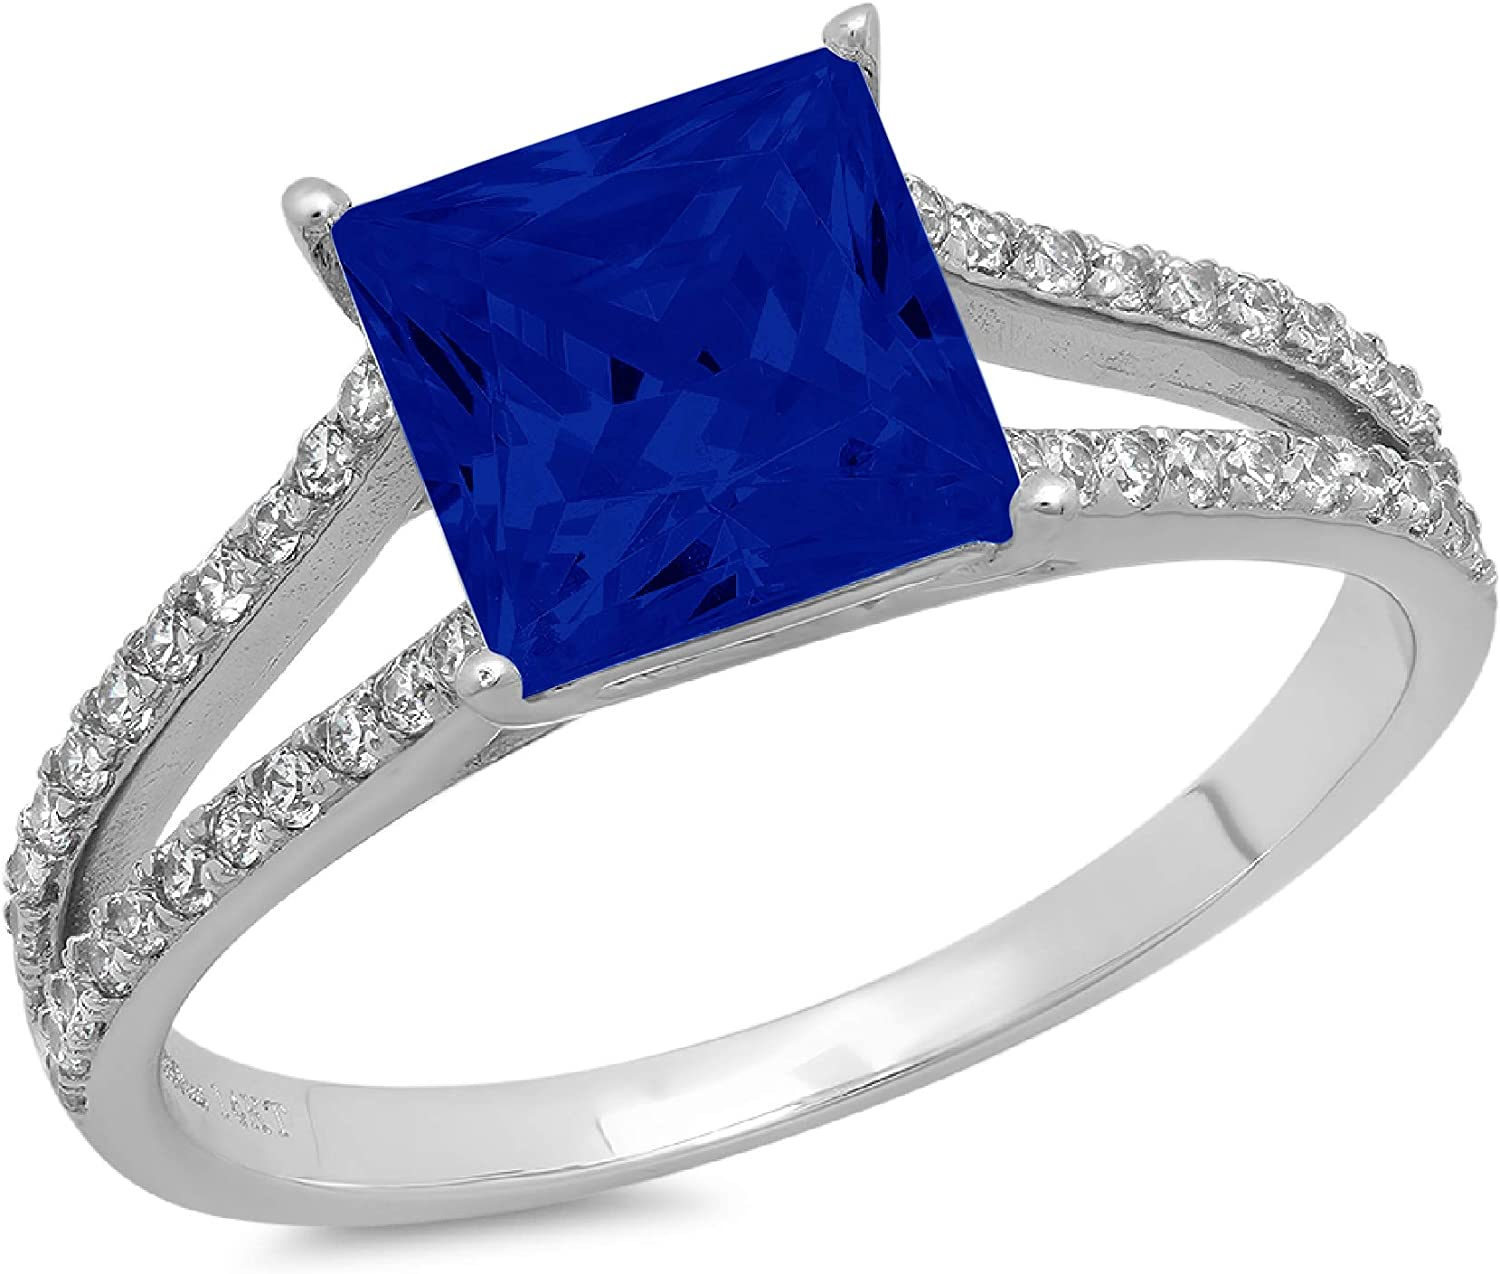 2.36ct Princess Cut Solitaire with Accent split shank Flawless Ideal Genuine Cubic Zirconia Blue Sapphire Engagement Promise Statement Anniversary Bridal Wedding Designer Ring 14k White Gold